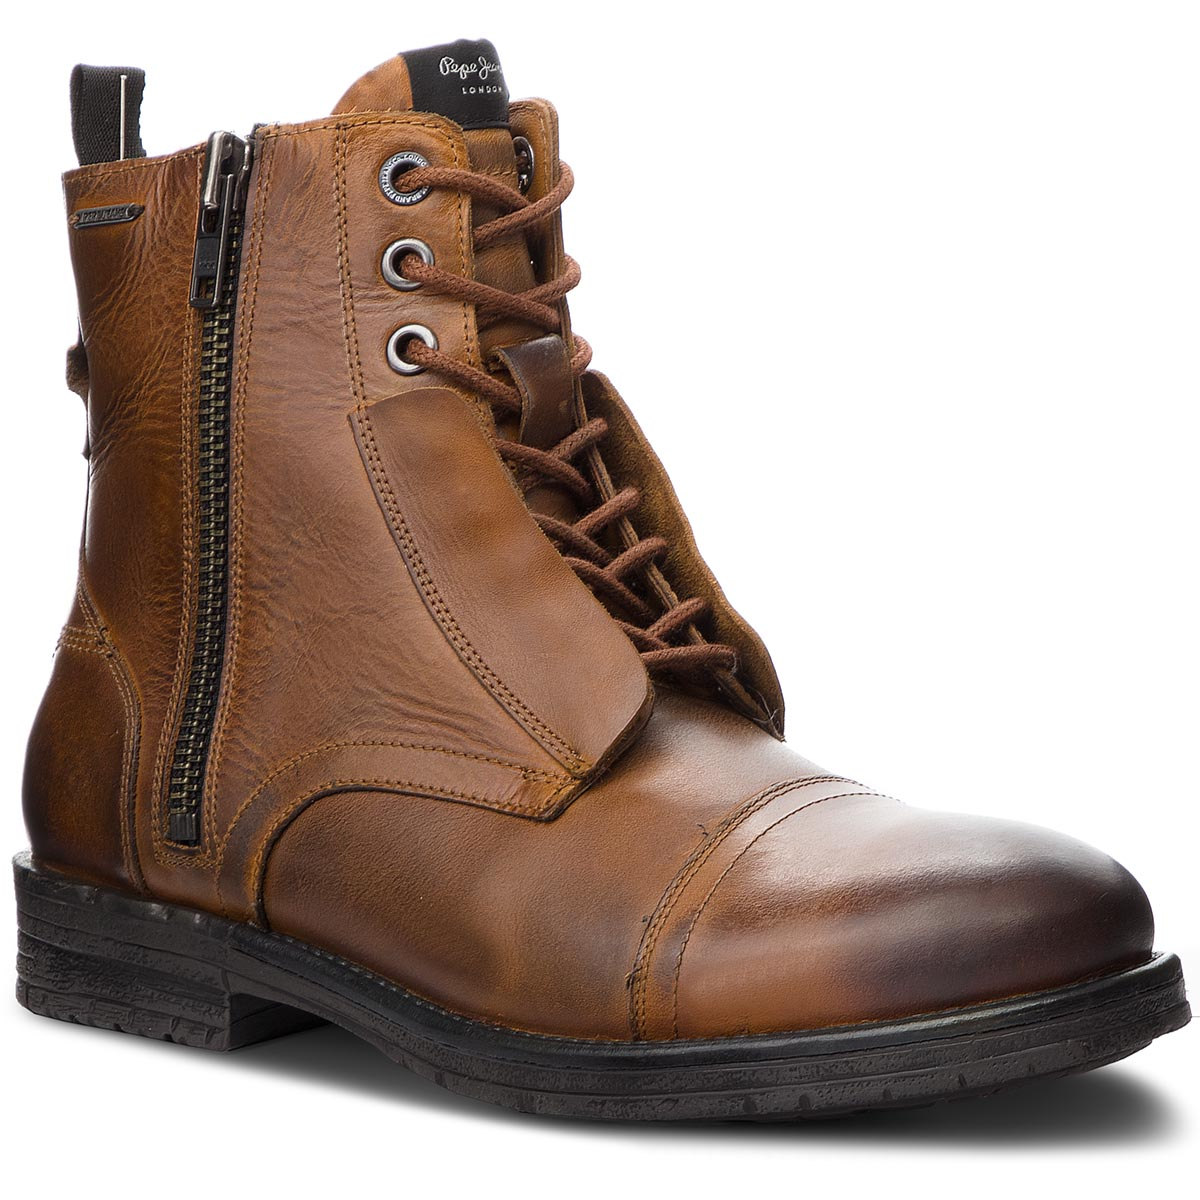 Cizme PEPE JEANS - Tom Cut Boot PMS50162 Tan 869